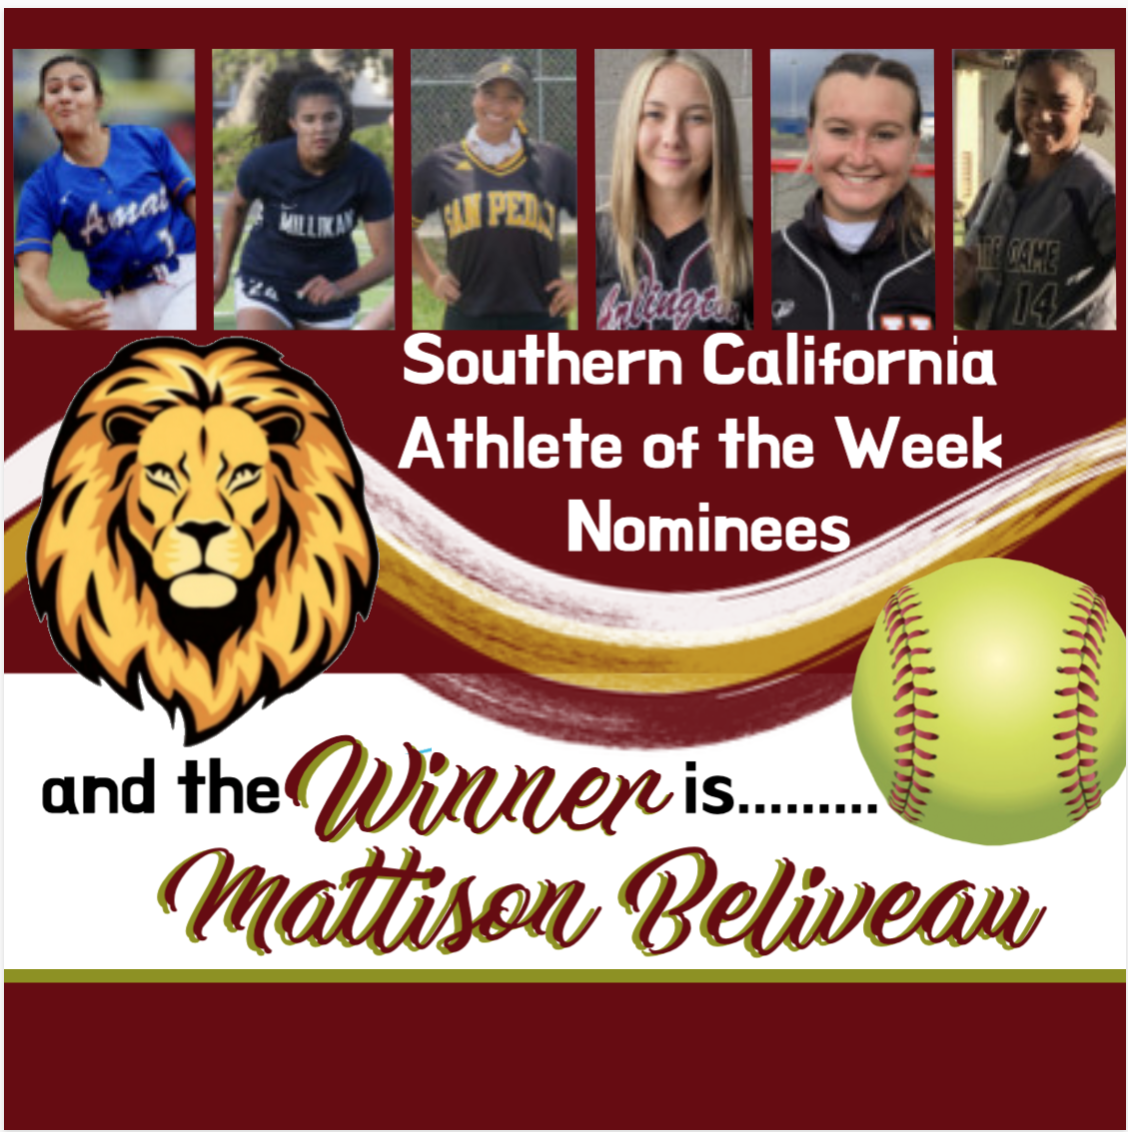 Mattison Beliveau – Southern California's Athlete of the Week